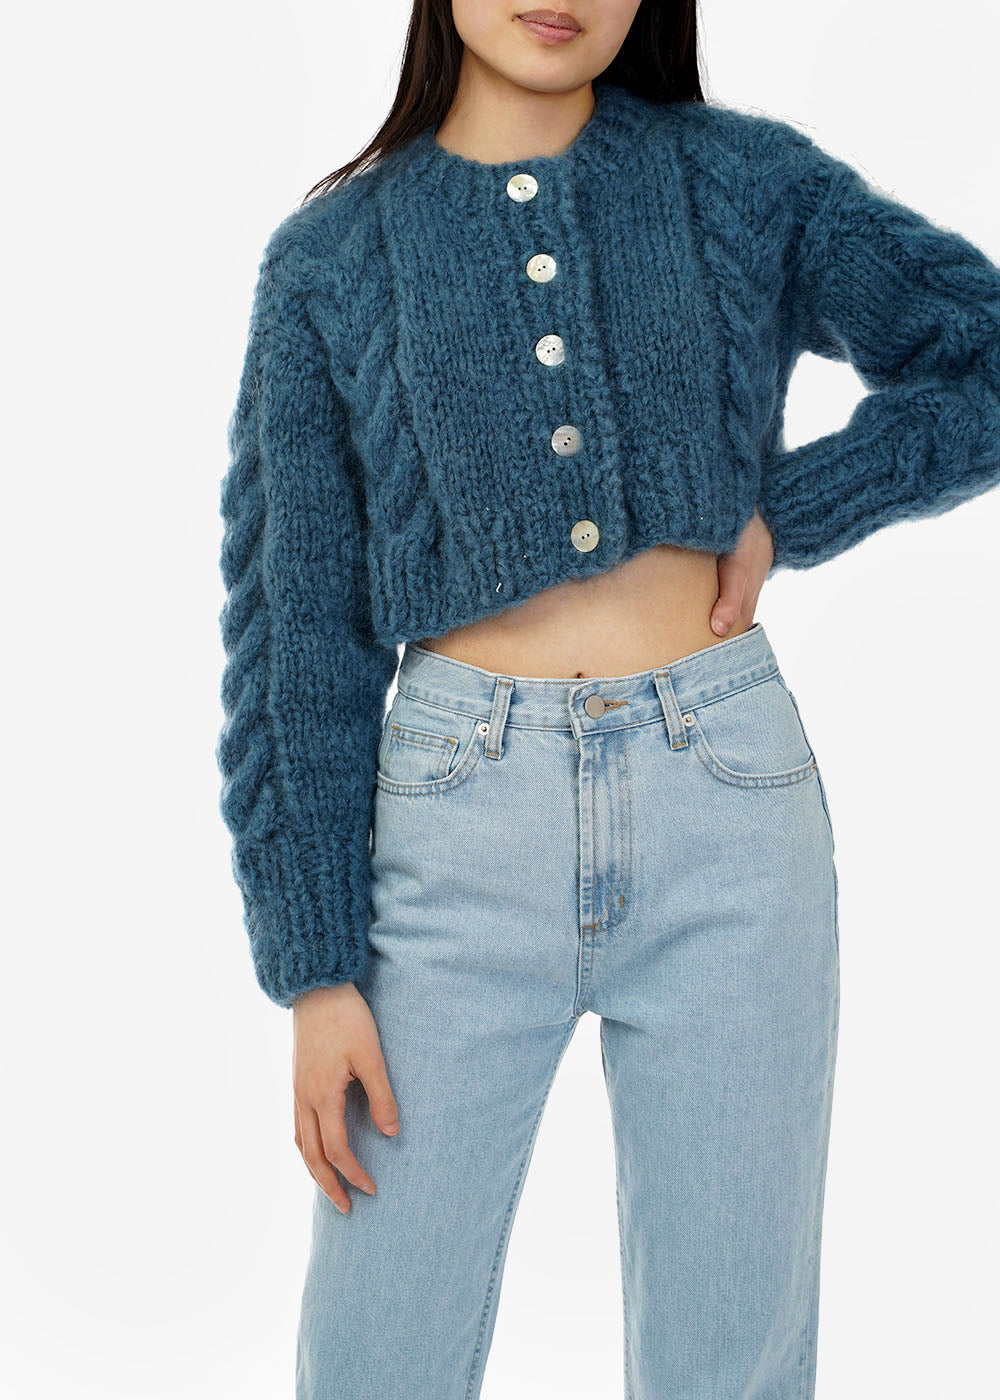 Frisson Knits Denim Francesca Cardigan — Shop sustainable fashion and slow fashion at New Classics Studios